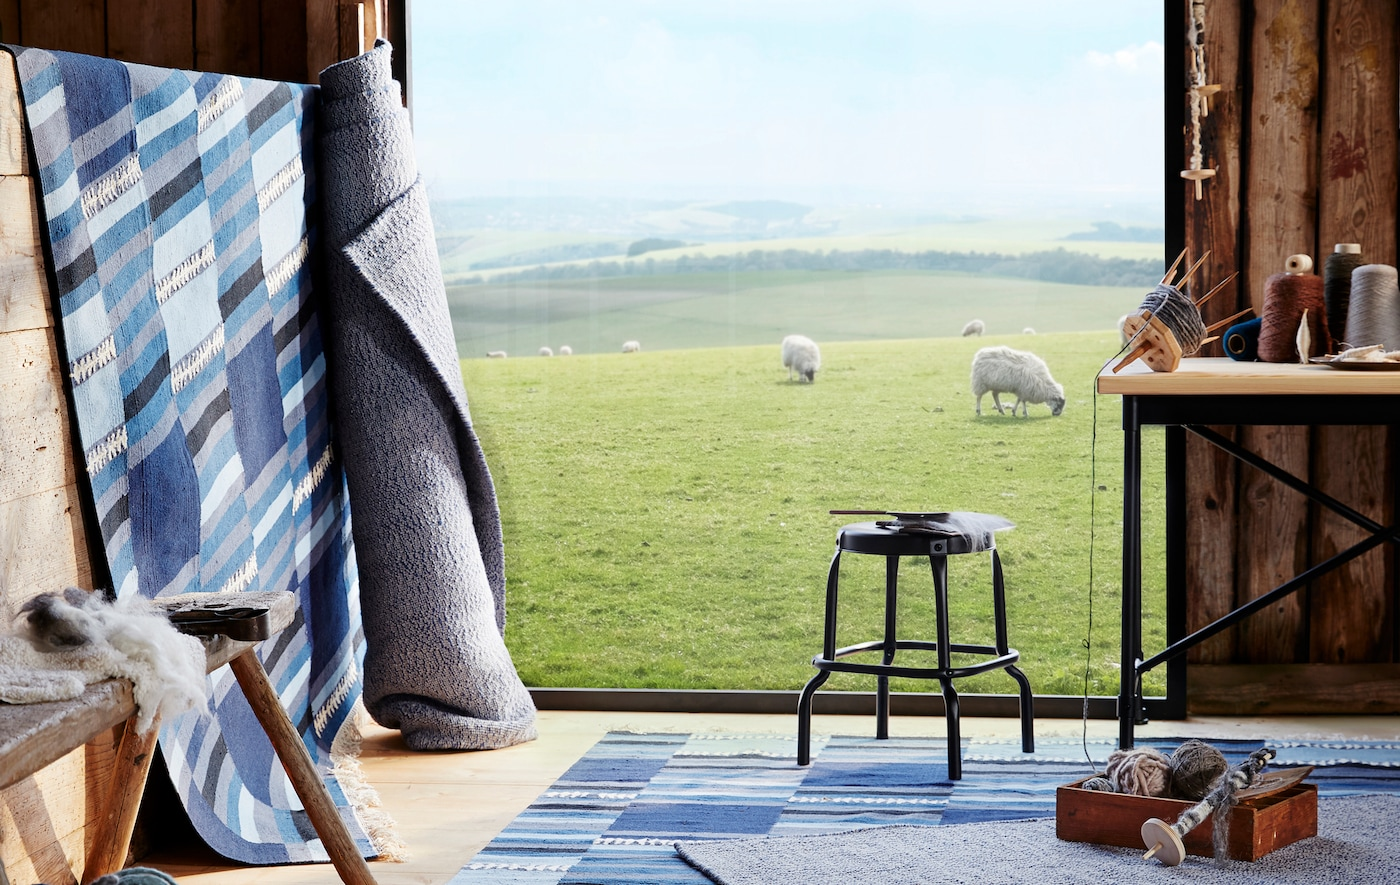 Blue and greay rugs laid out and rolled up in a wooden room, looking out onto a field of sheep.